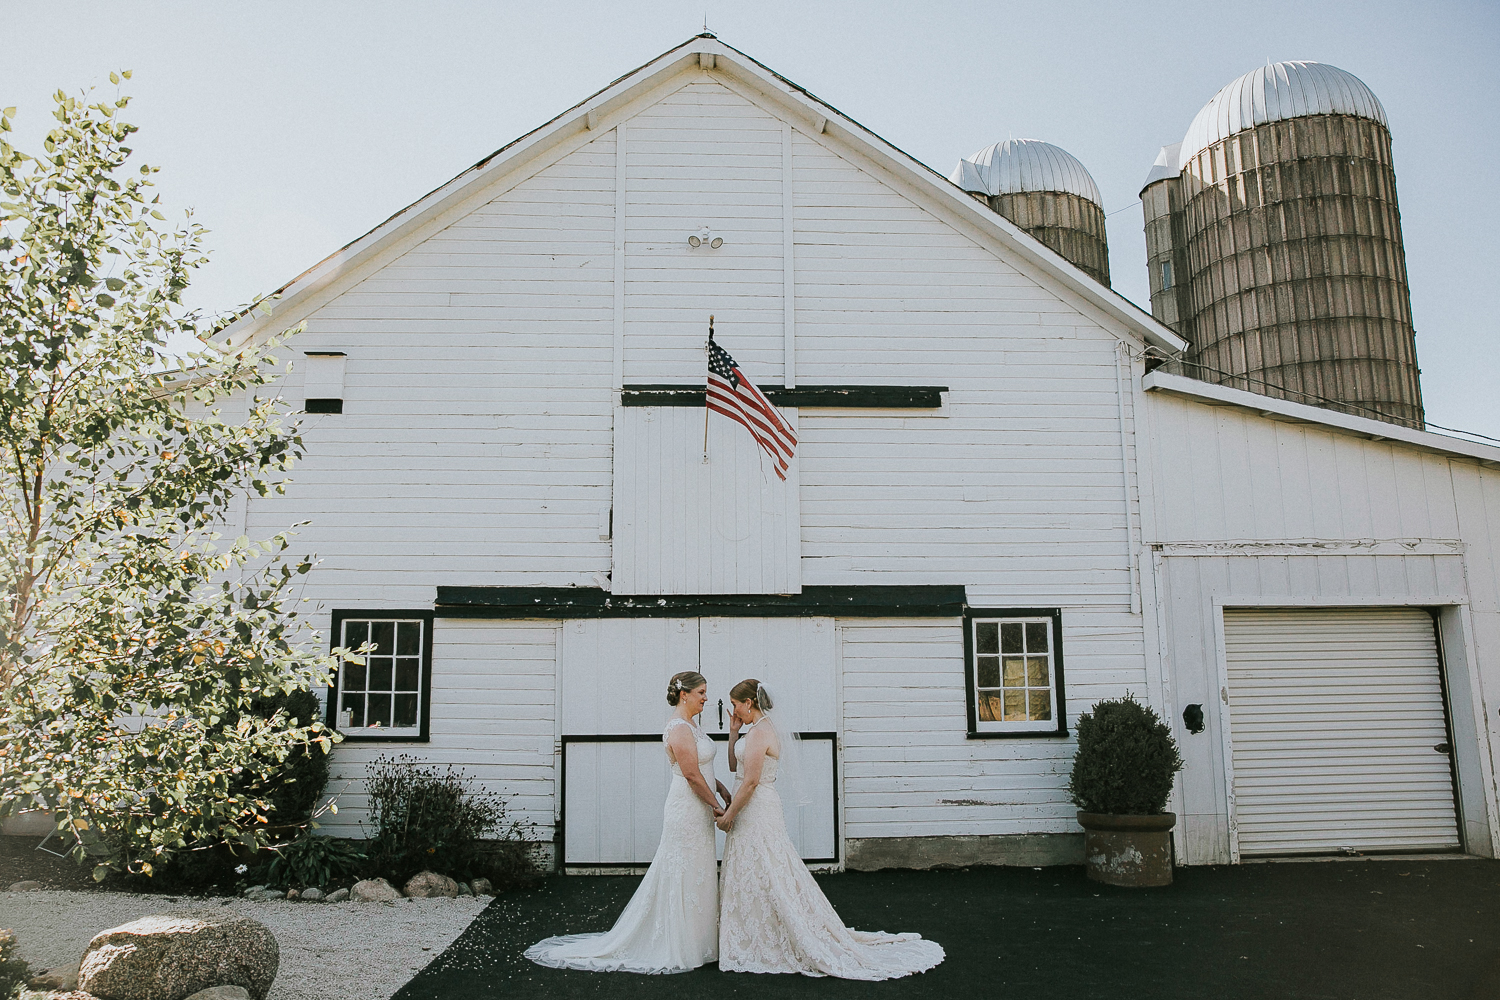 heritage-prairie-farm-wedding-leah-lewis-1